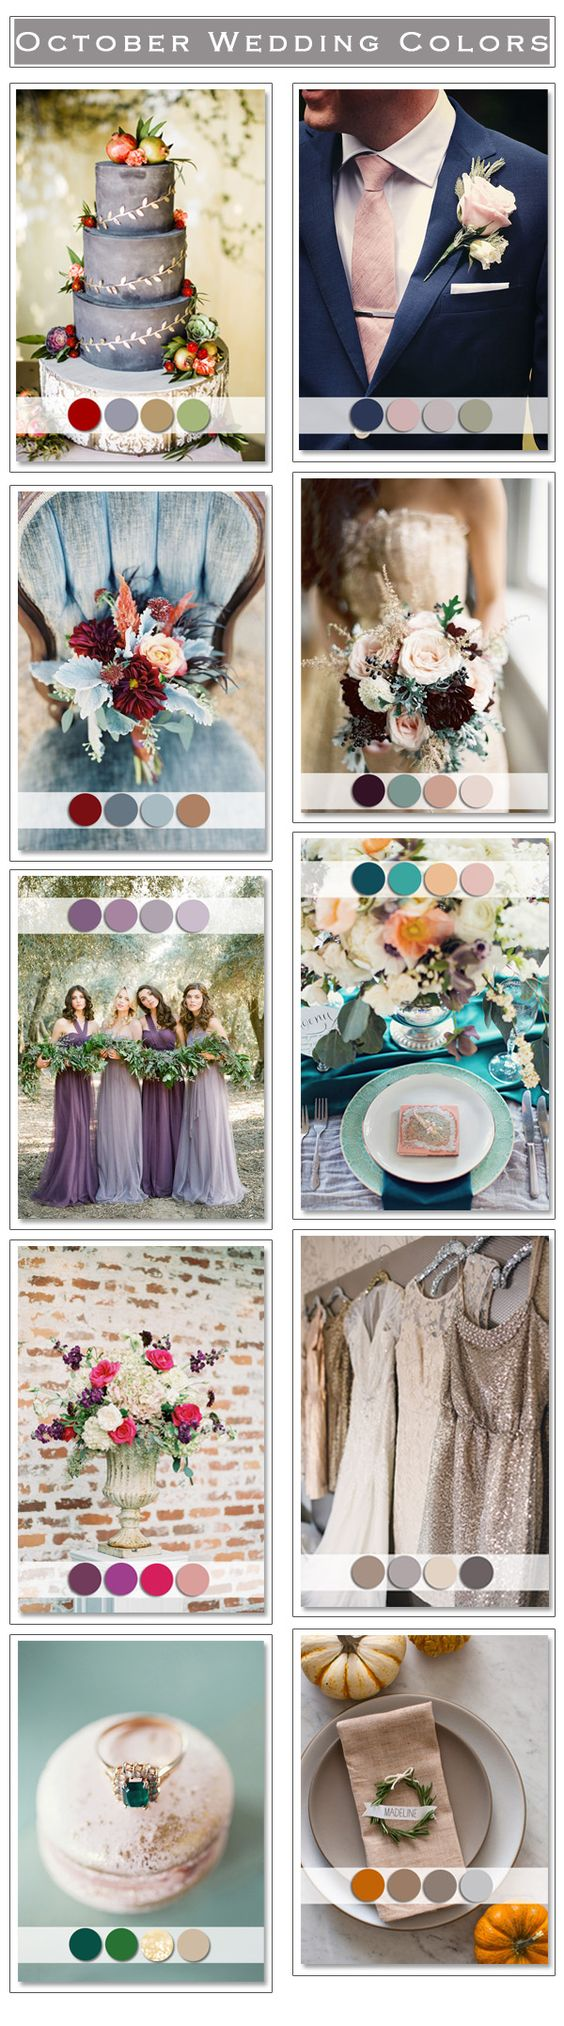 the bottom left picture- green and nude and gold hints. so perfect for my summer/autumn cottage wedding